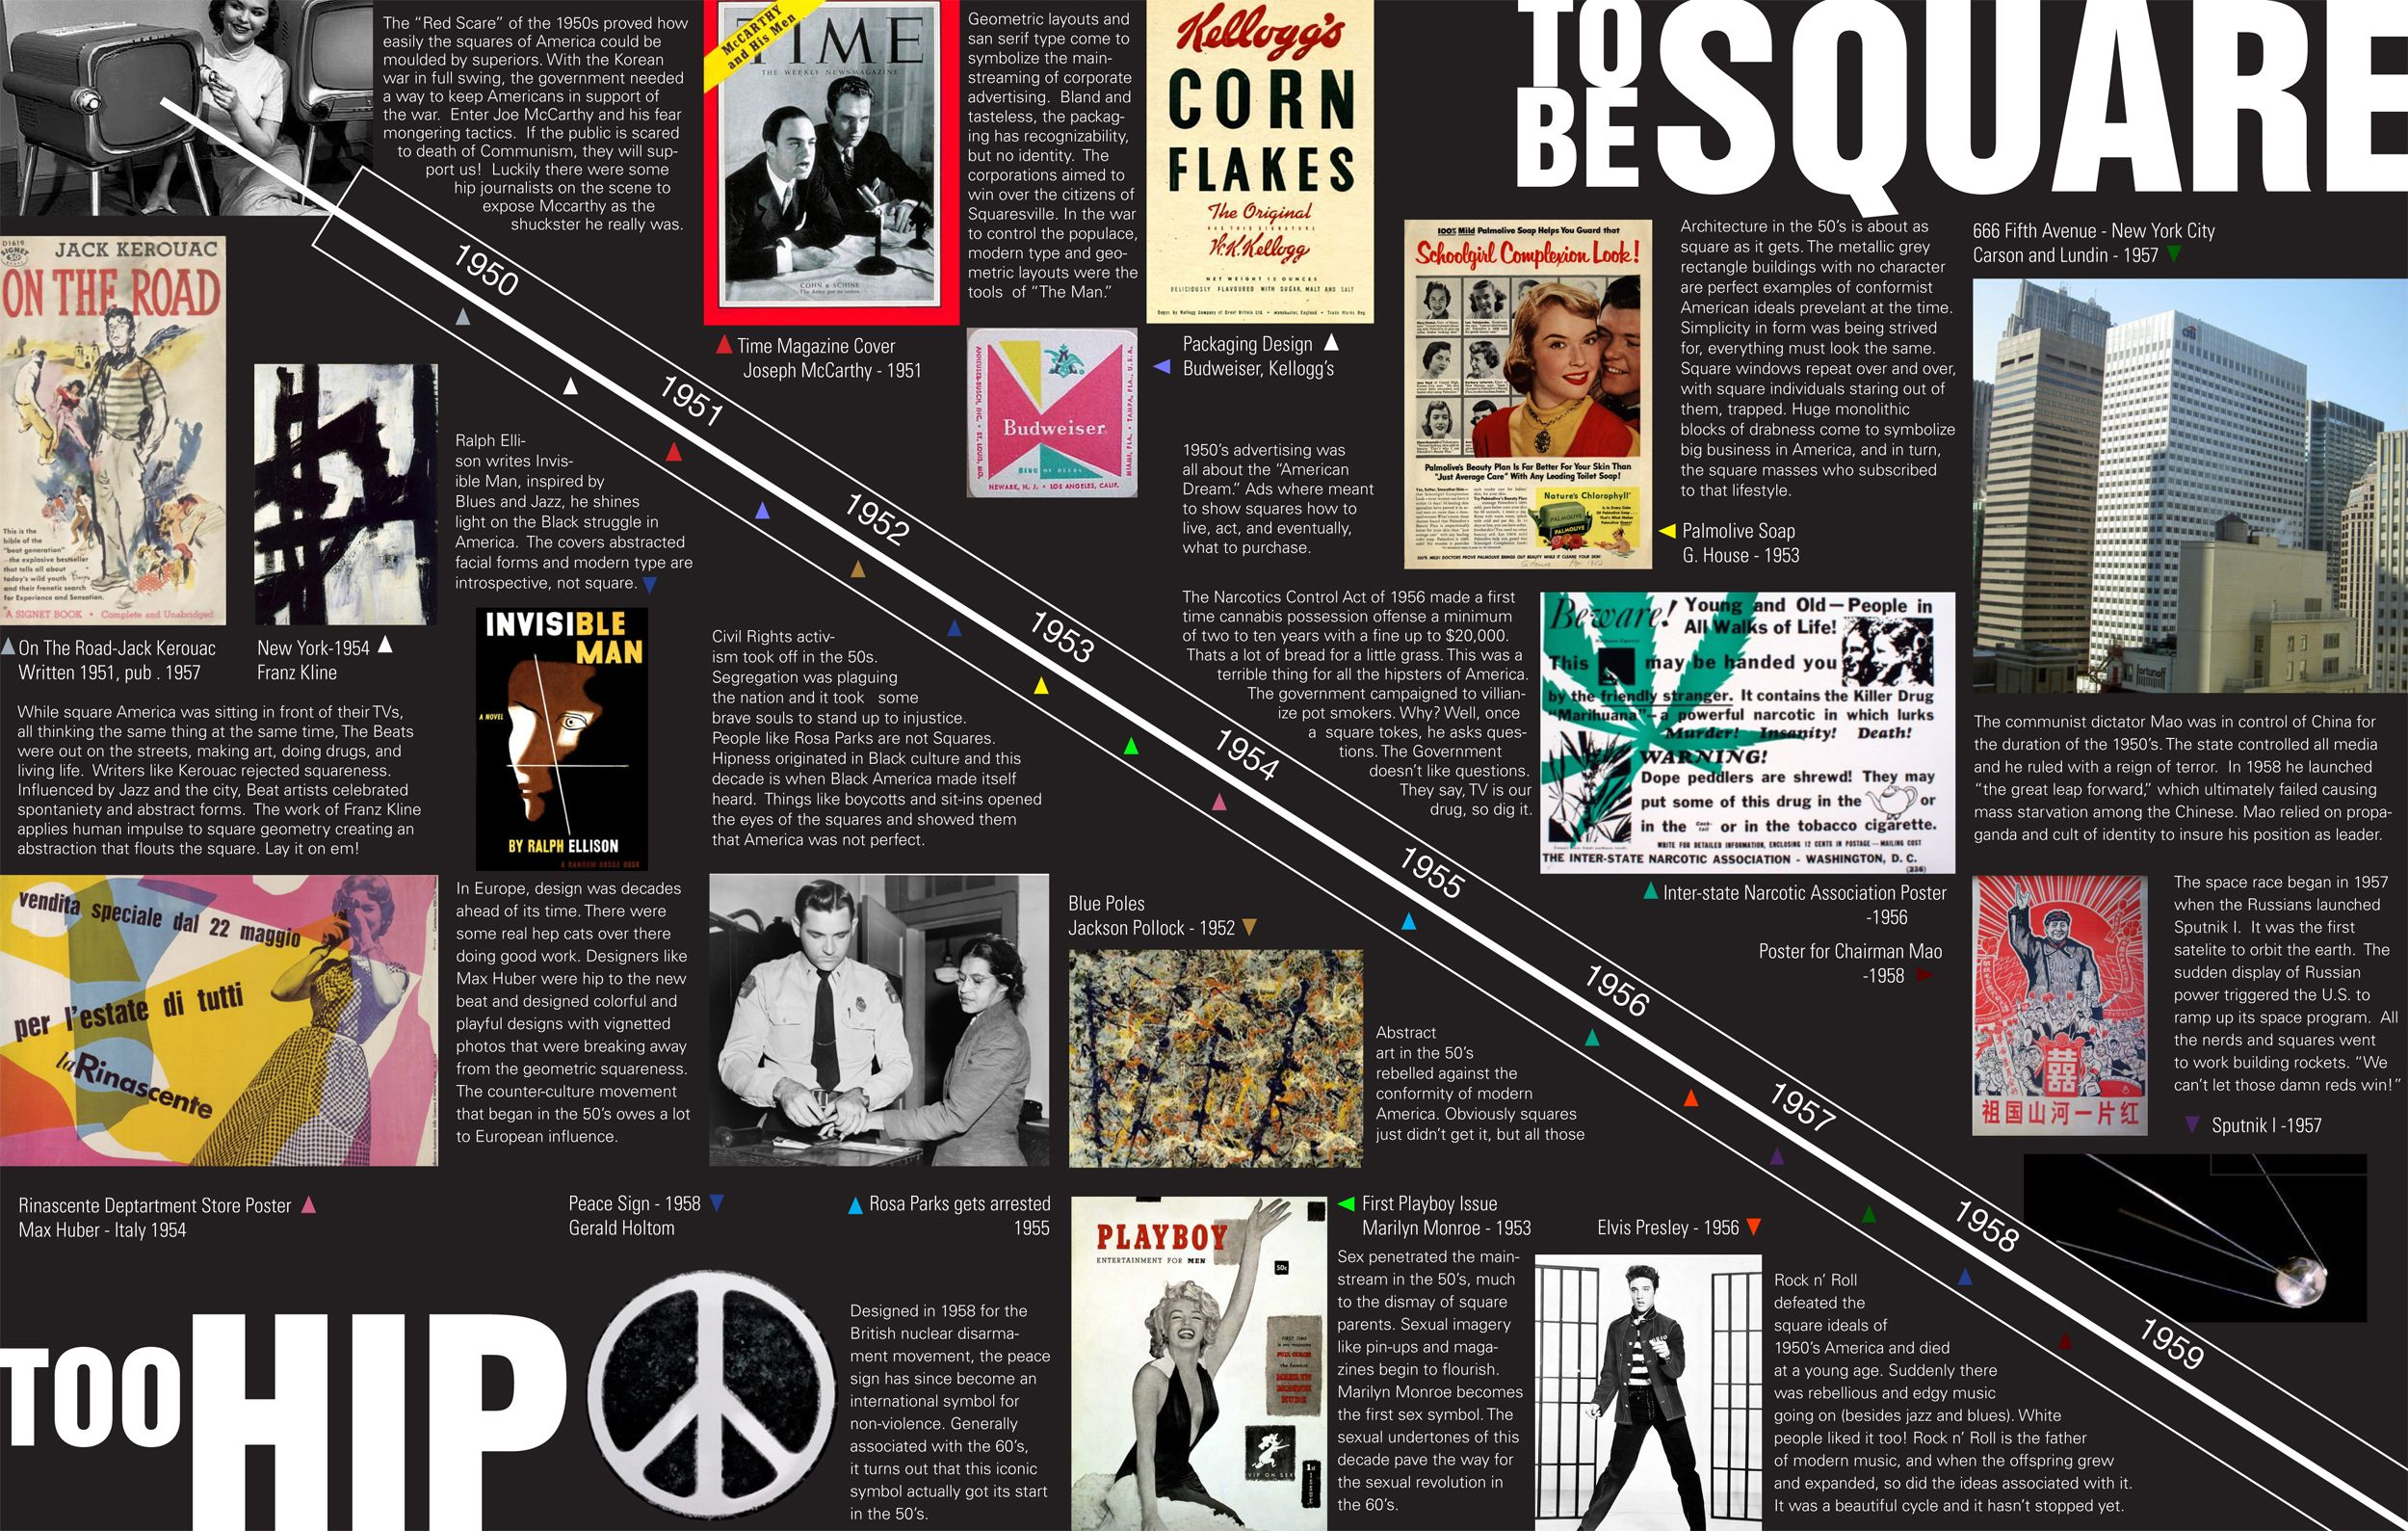 1950s History of Graphic Design Timeline by Brian Thabault